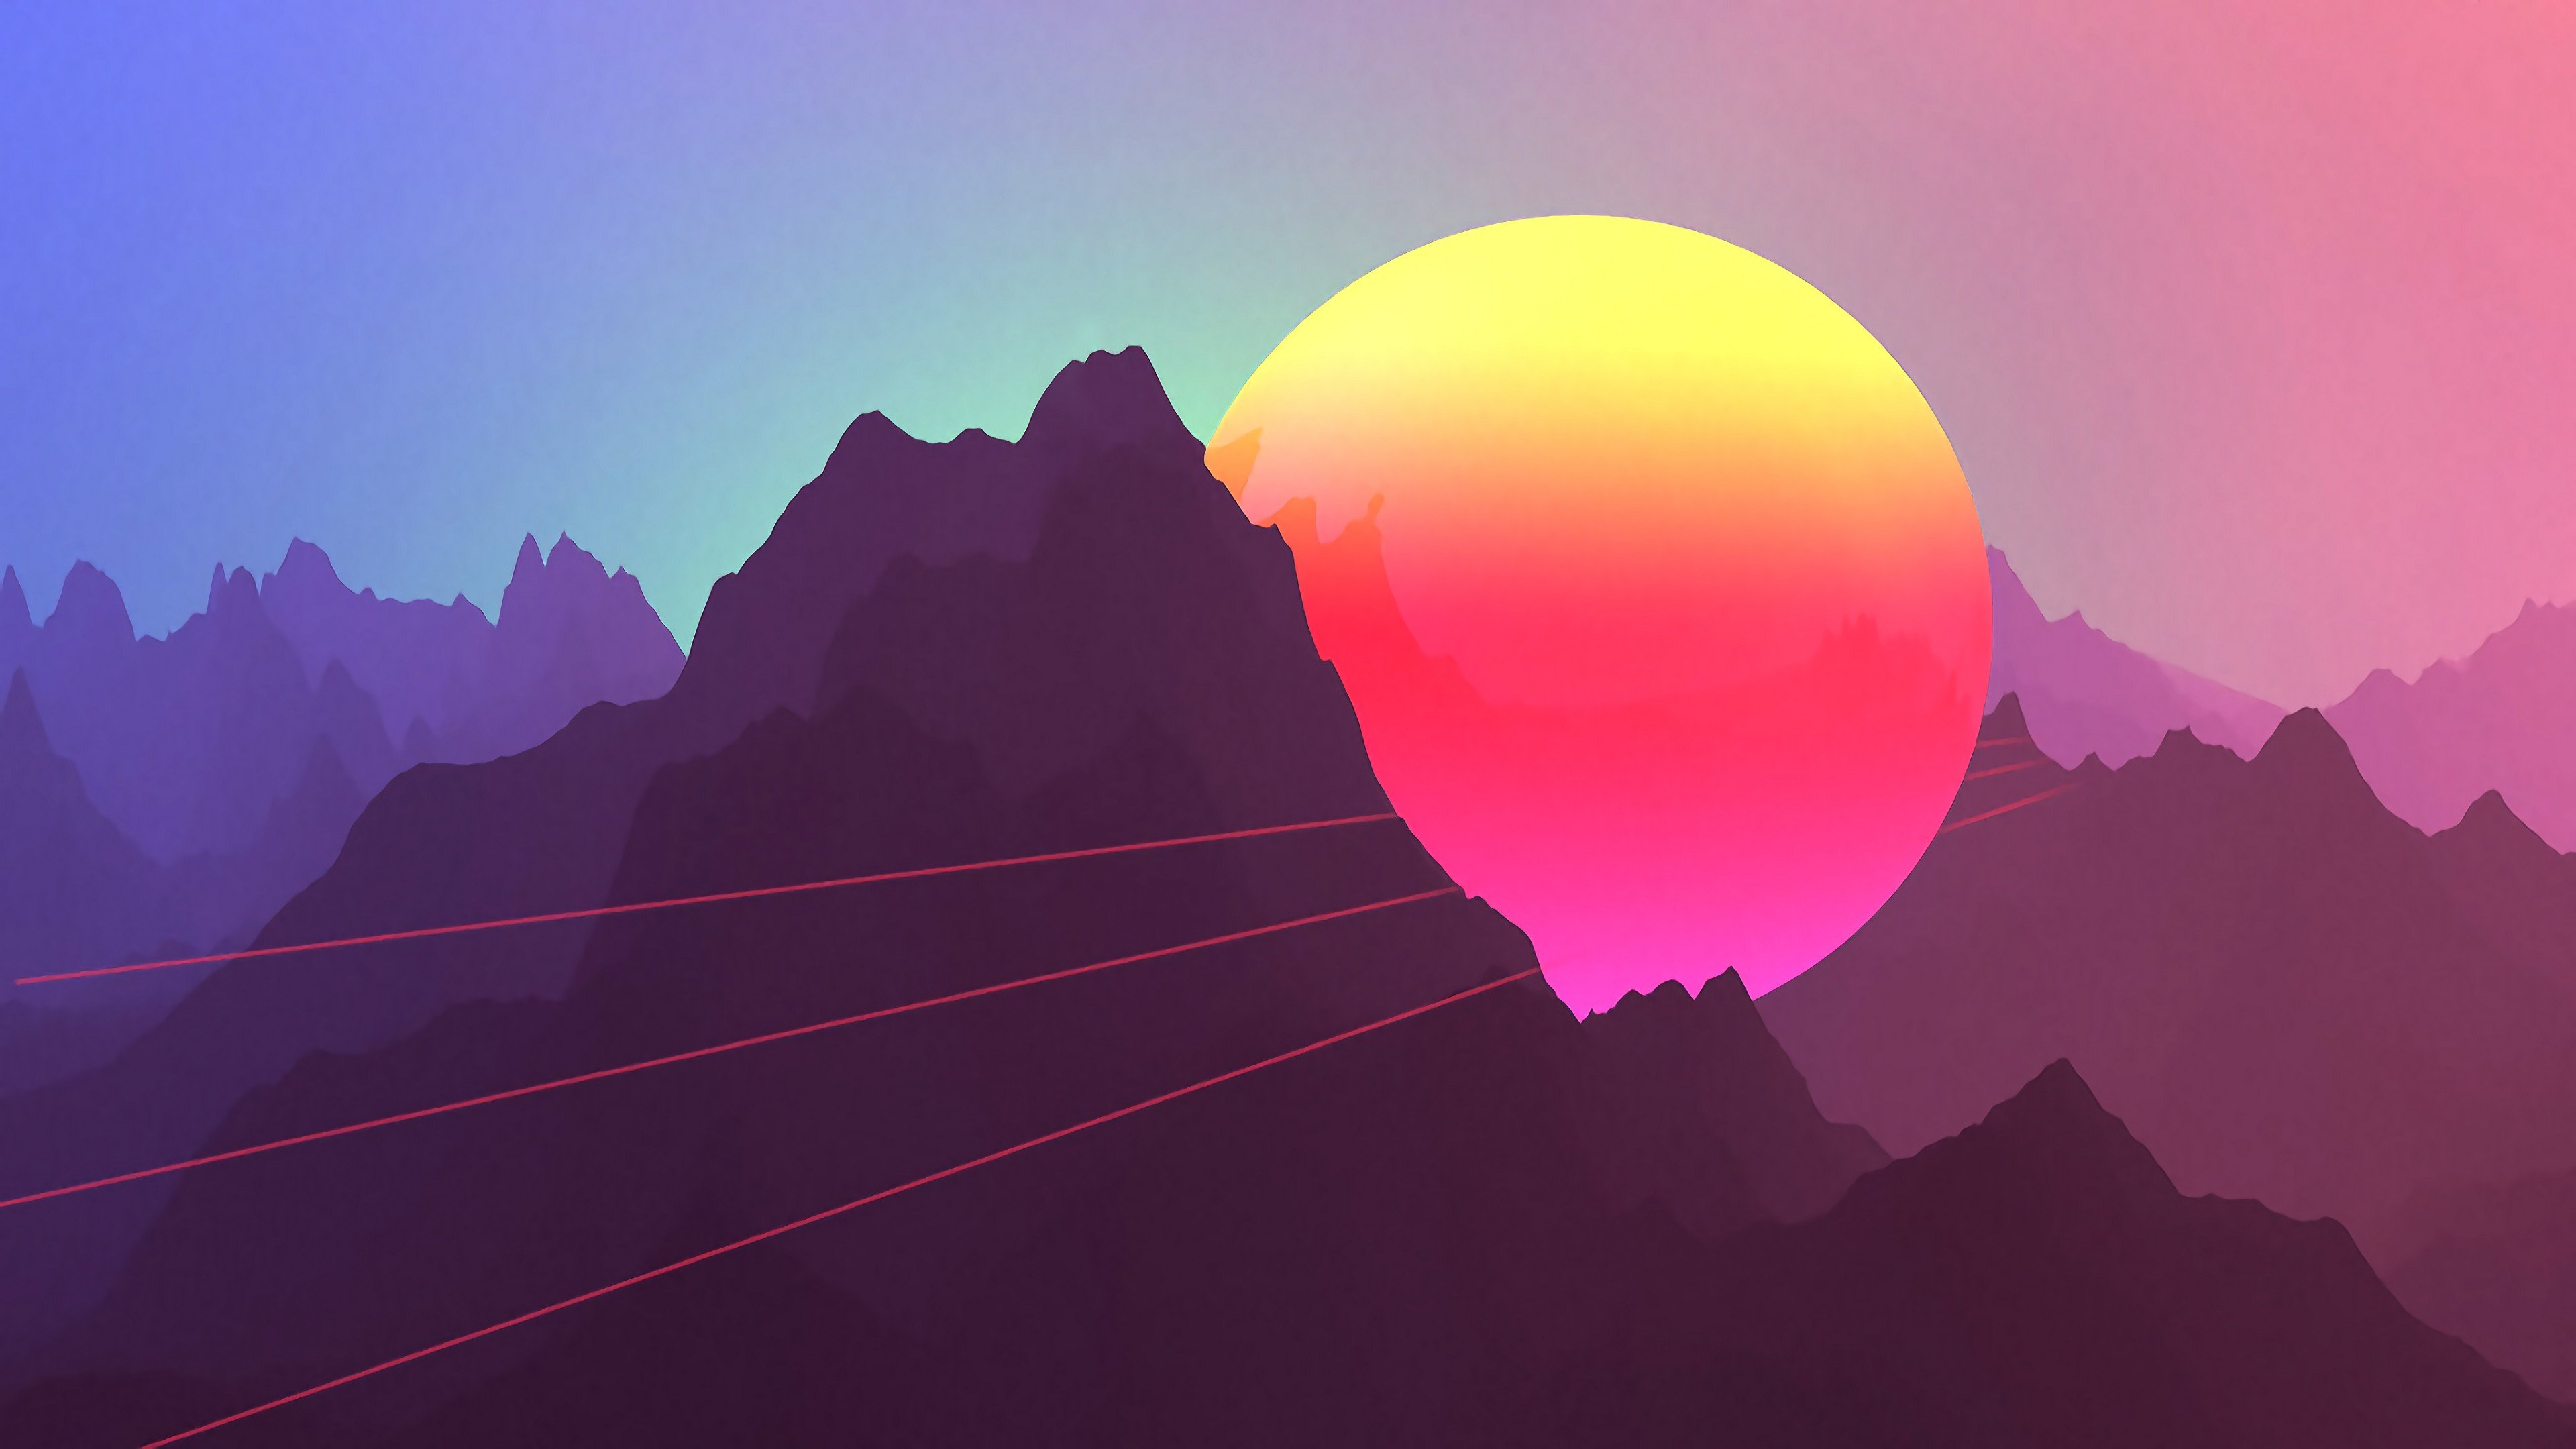 Aesthetic 4K wallpapers for your desktop or mobile screen ...